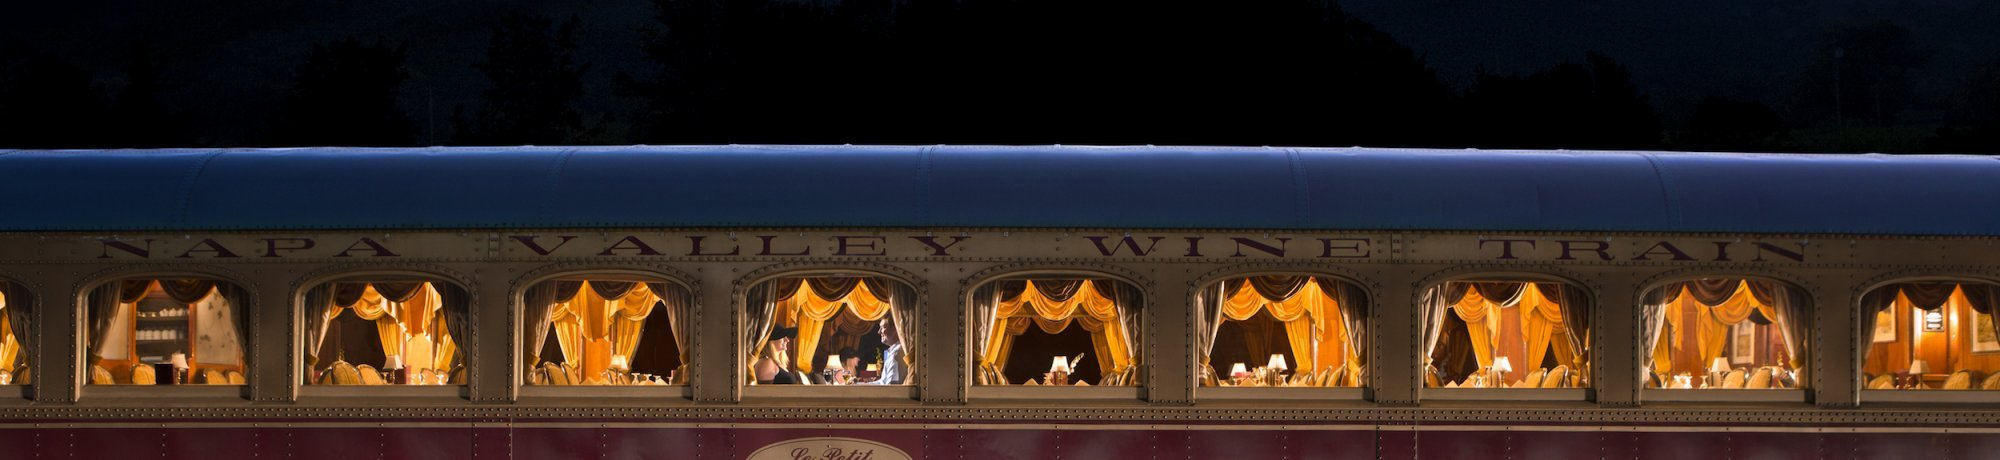 exterior shot of Napa Valley Wine Train le petit gourmet train car with night sky and hill shadows in the distance